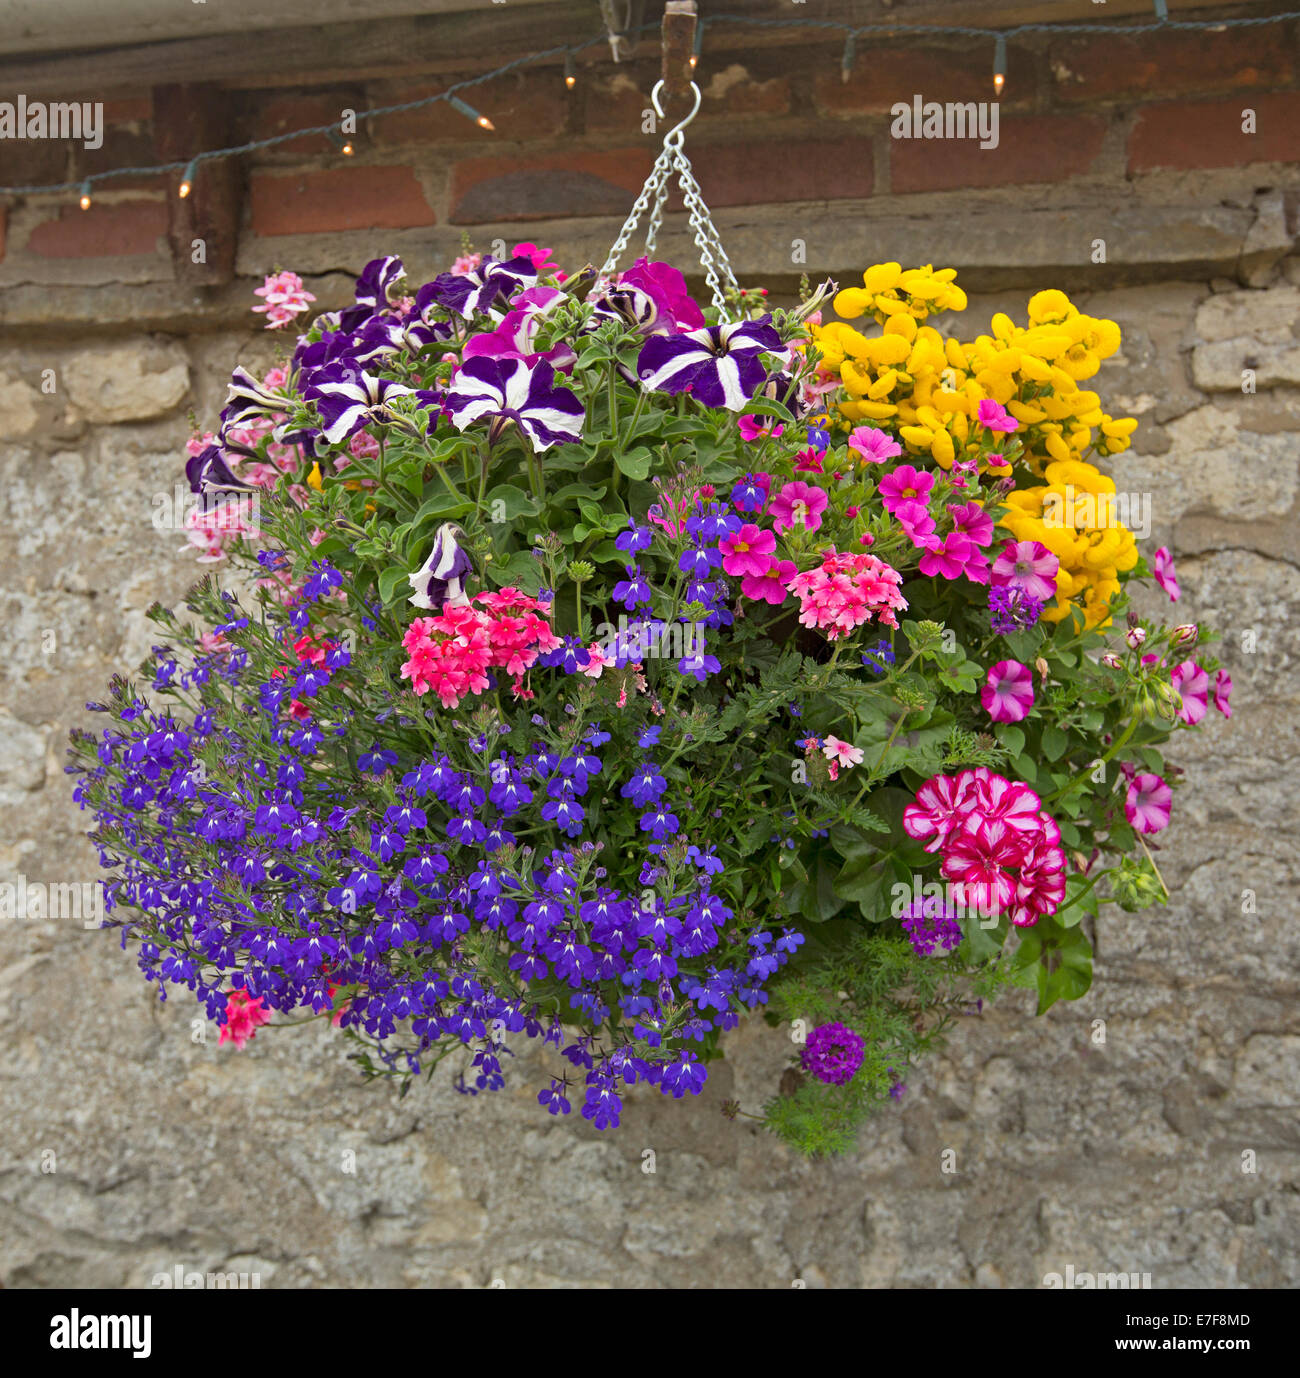 Hanging Basket With Mass Of Brightly Coloured Flowers Blue Lobelia